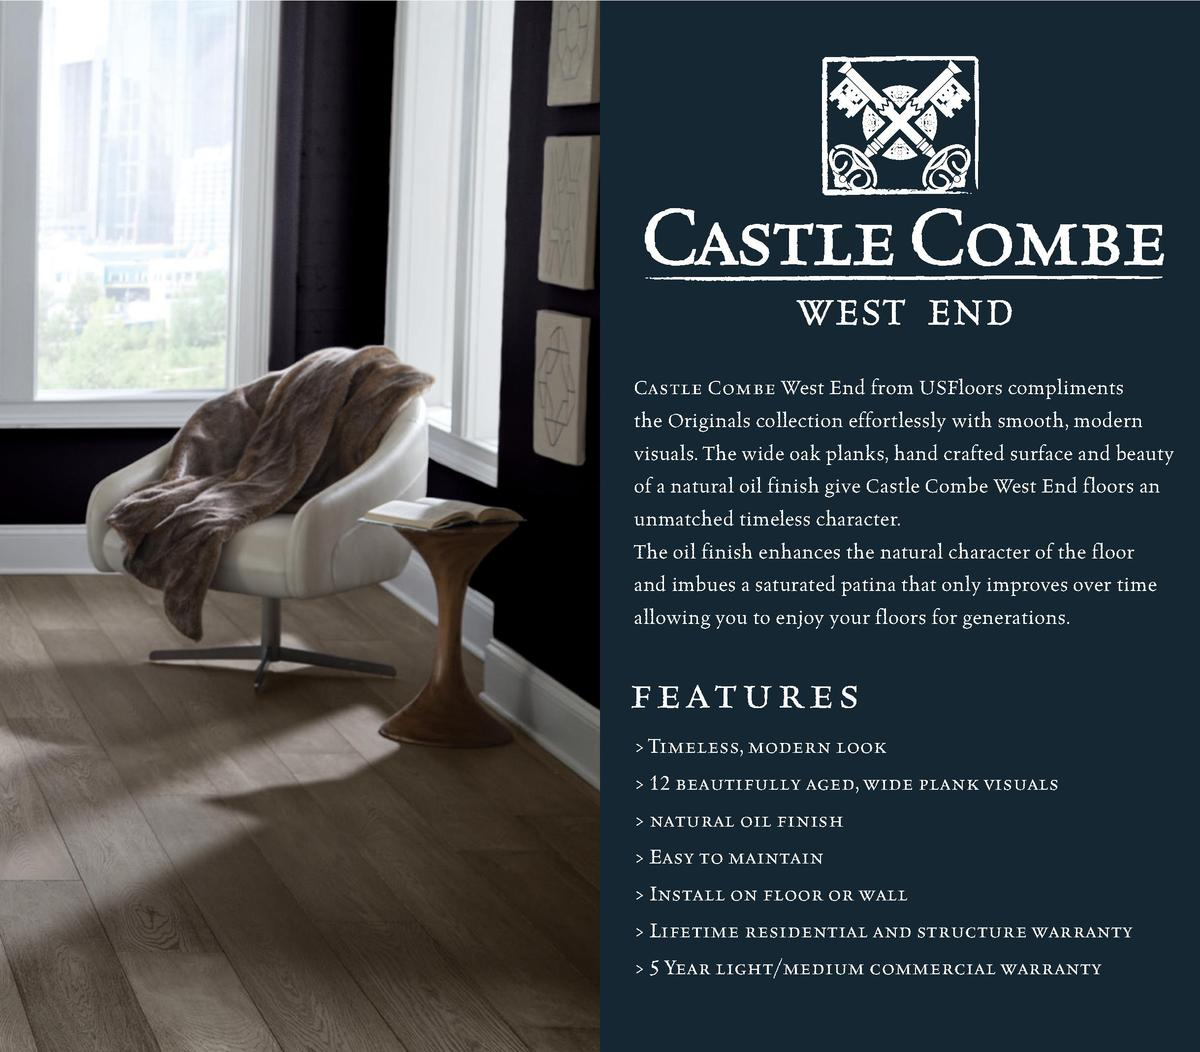 castle combe west end catalog : simplebooklet